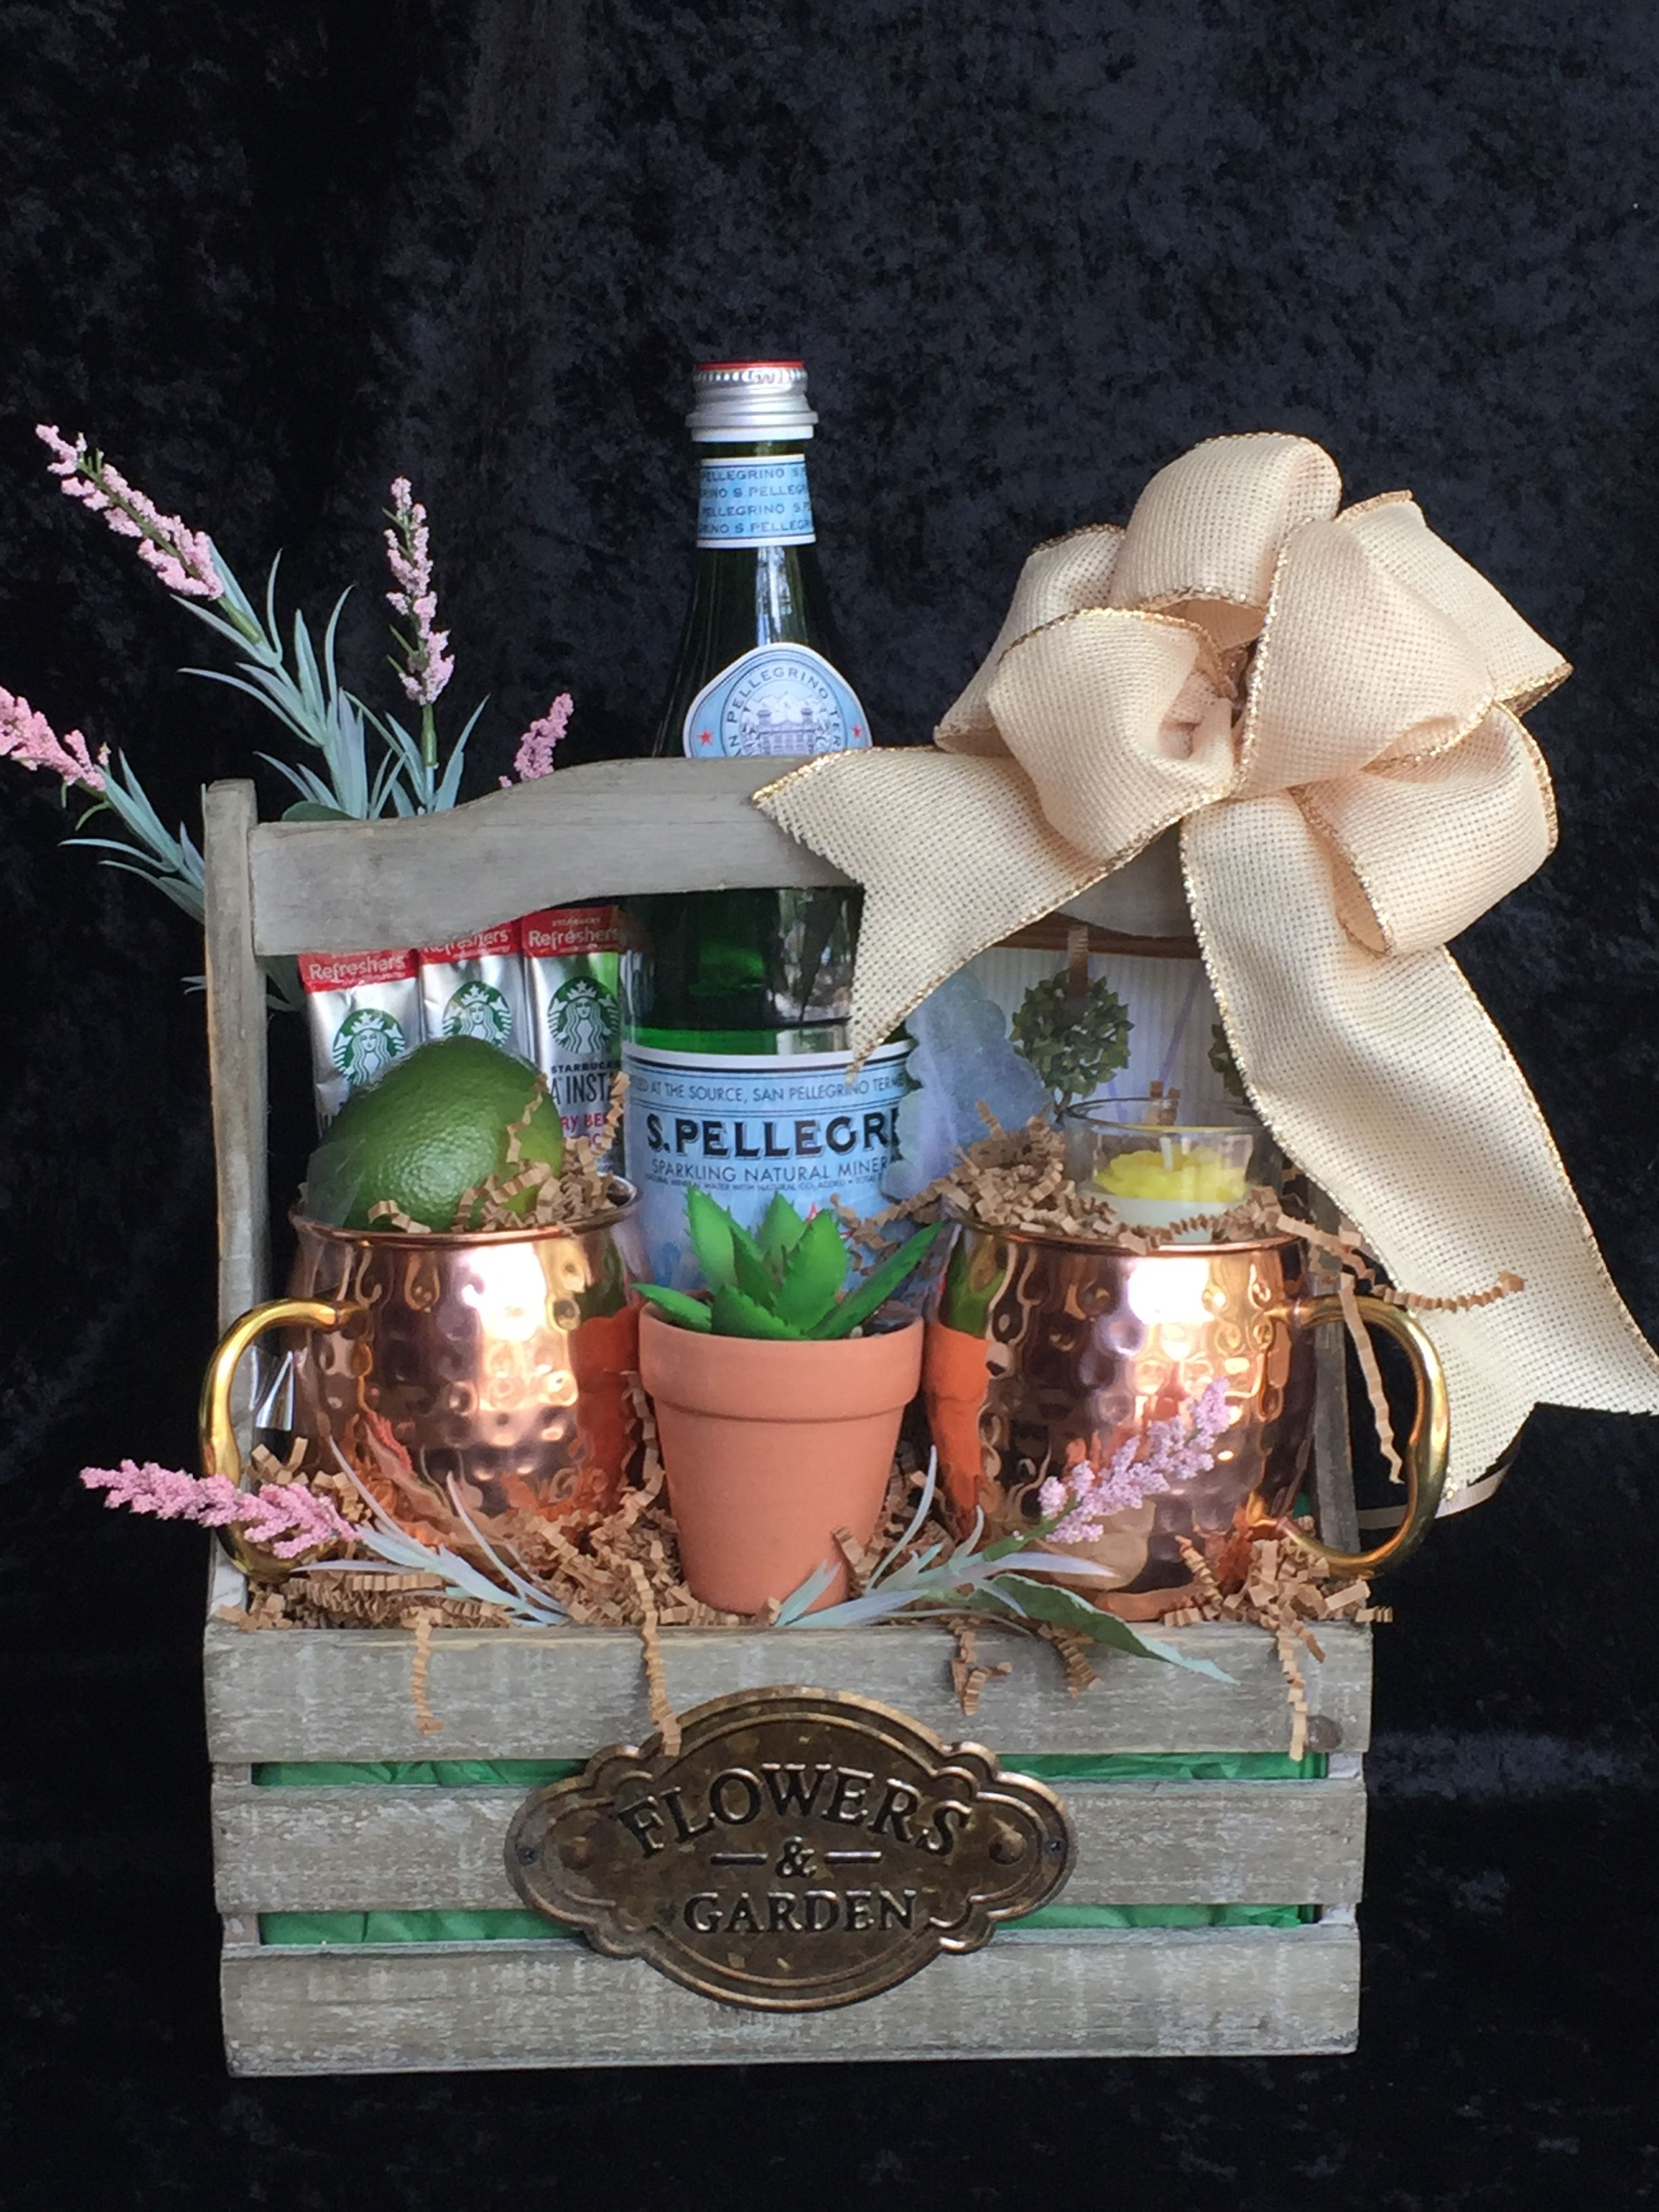 Best Housewarming Gifts 2020 Custom Gifts For All Occasions | 2020 Walmart Easter Trends